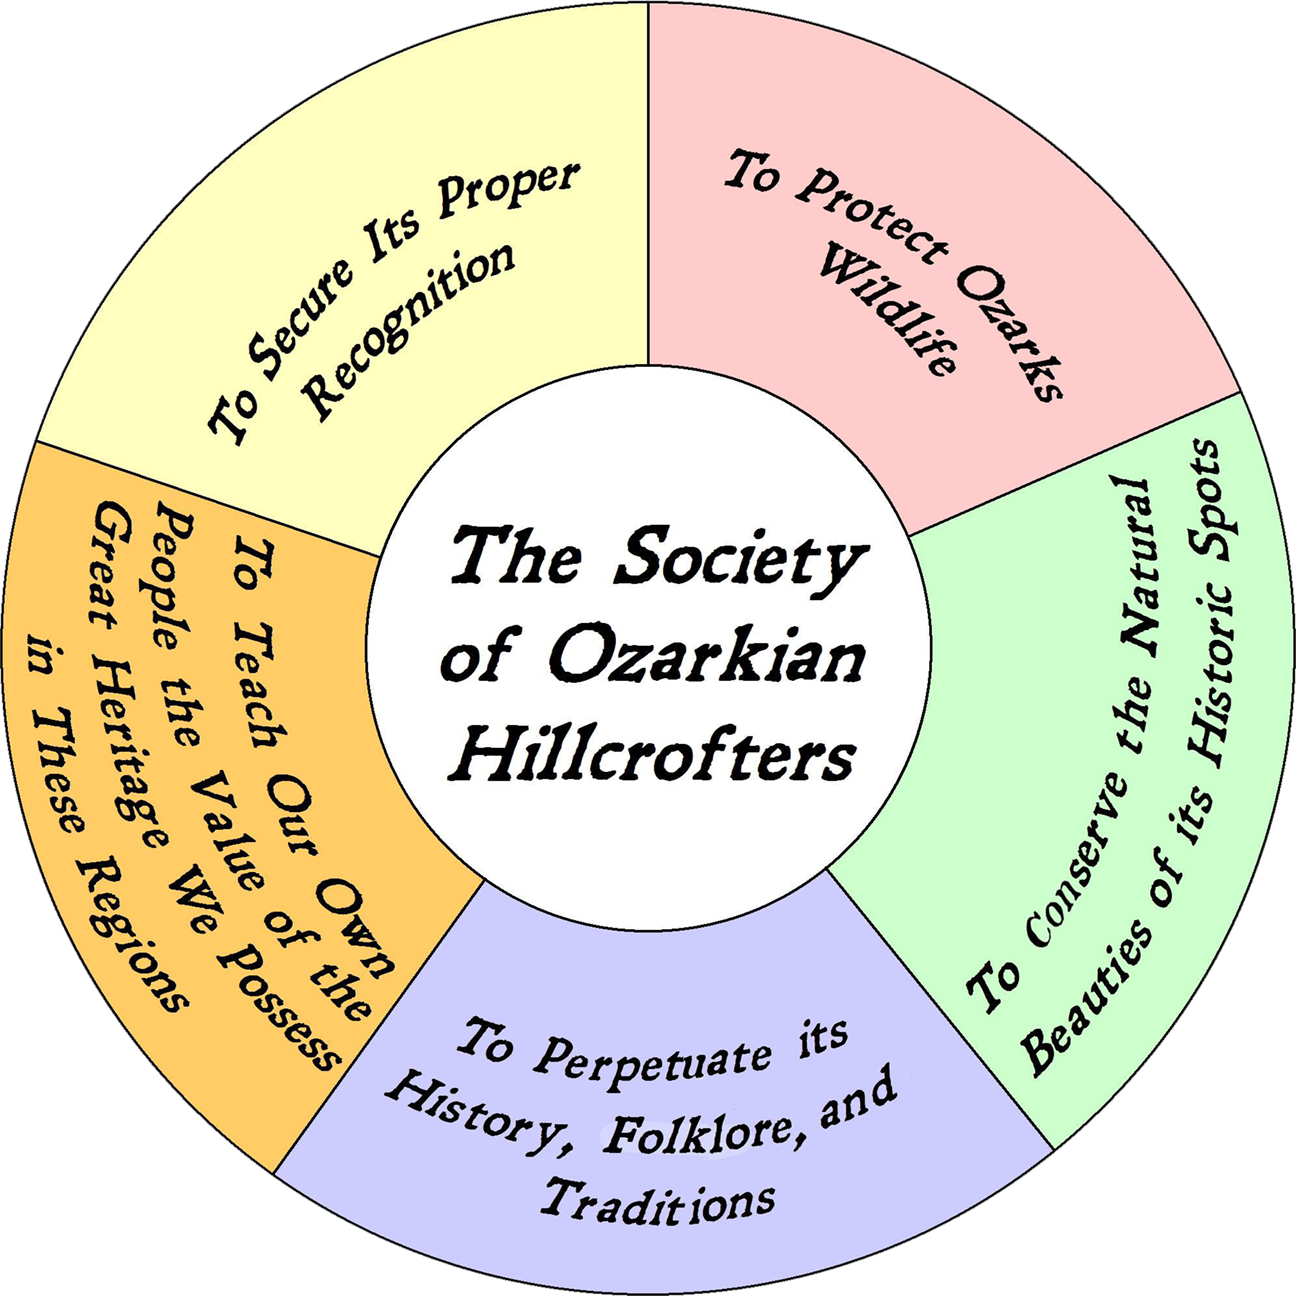 The Society of Ozarkian Hillcrofters